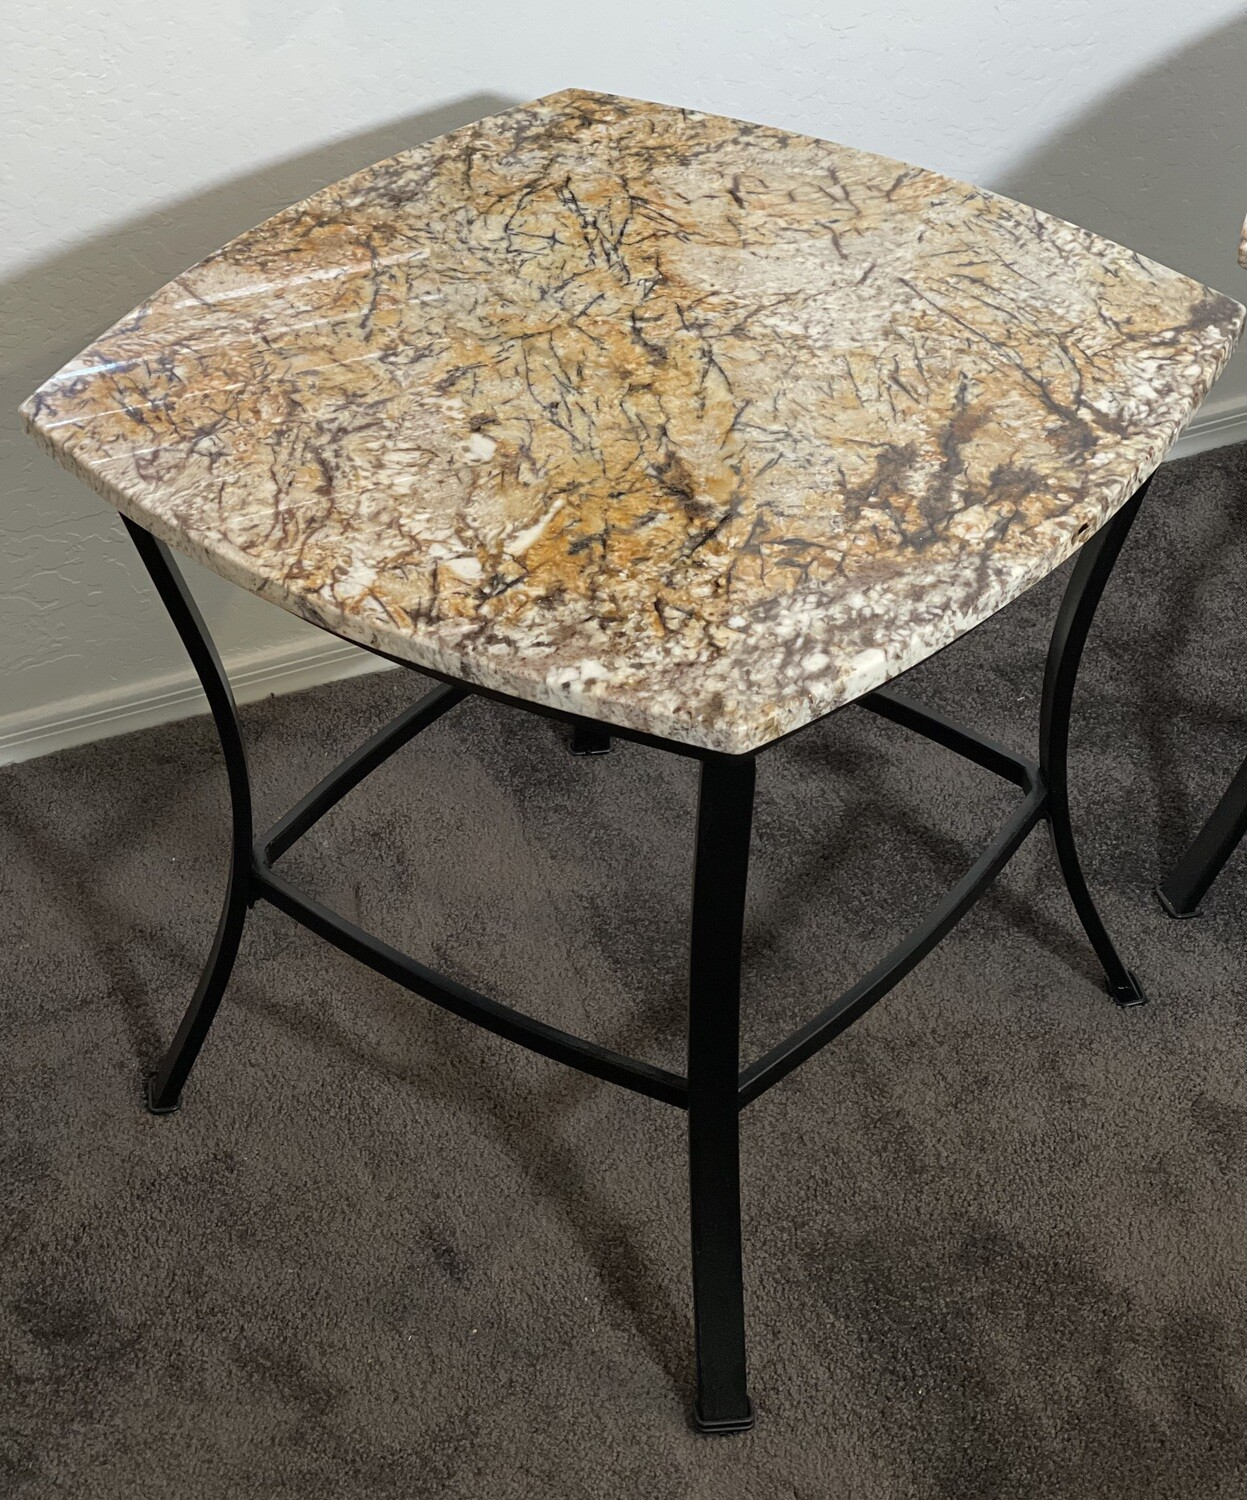 #1 Granite Top Iron Frame End Table